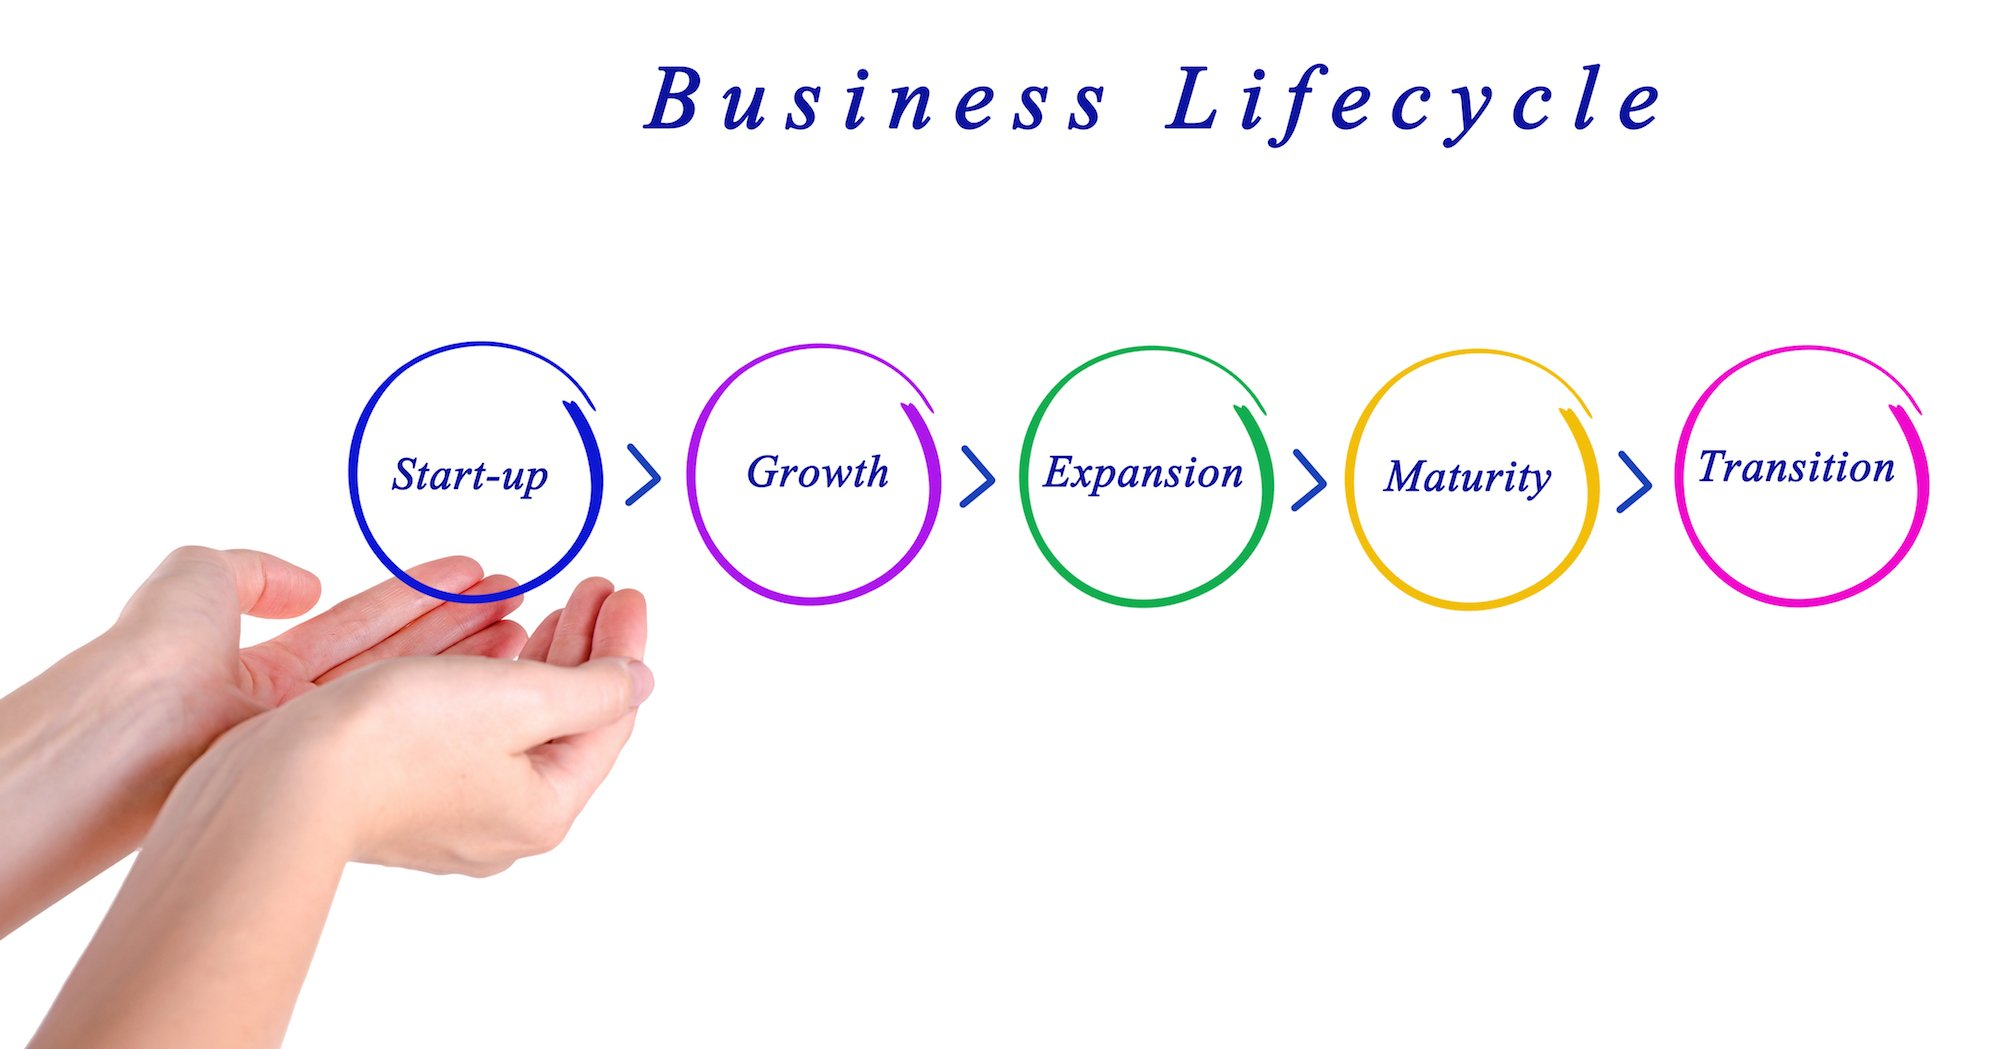 business life cycle During the growth of a small business, a company will go through the stages of the business life cycle and encounter different challenges that require different financing sources for example, the business will require a different strategy when it comes to market penetration, business development, and retaining market share.